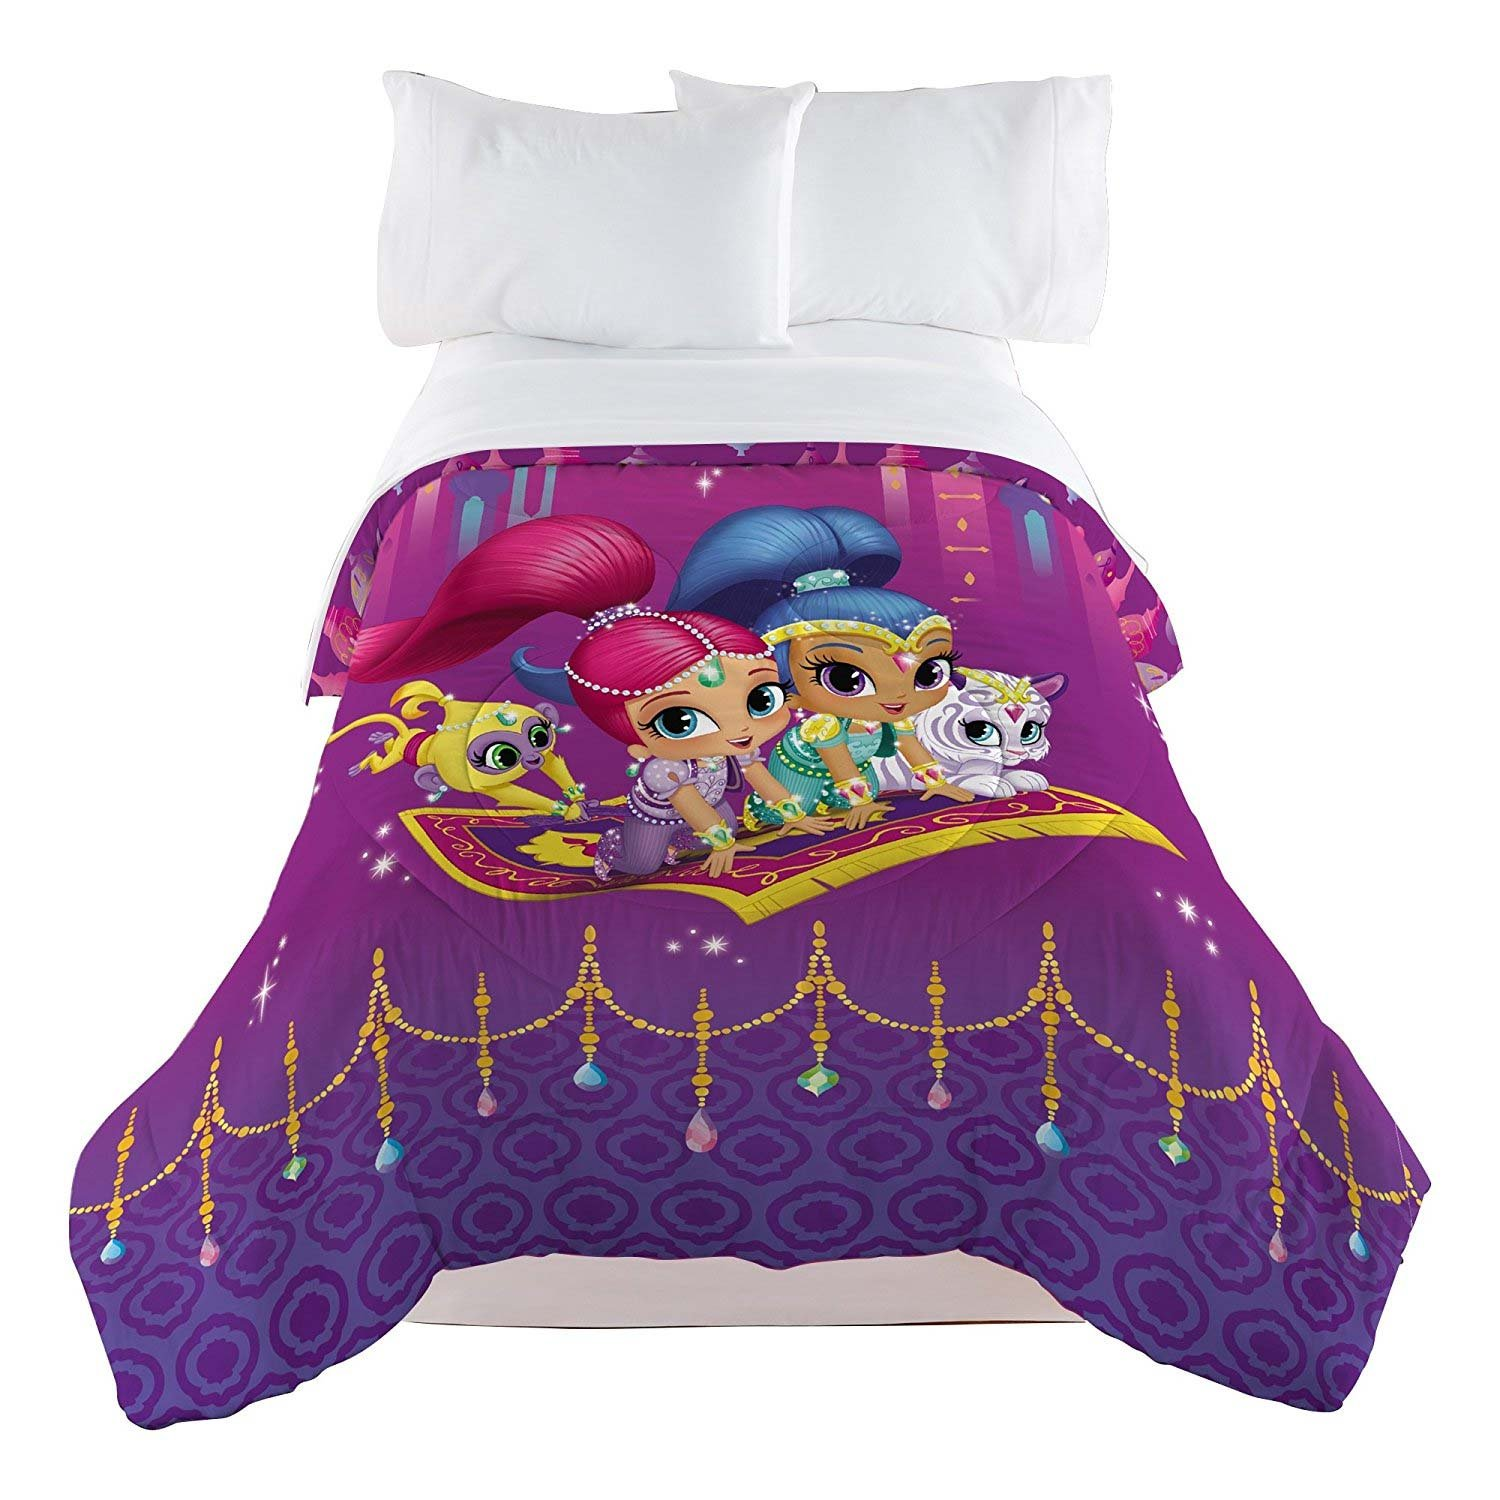 Shimmer and Shine Magical Wonders Twin Comforter by Nick Jr